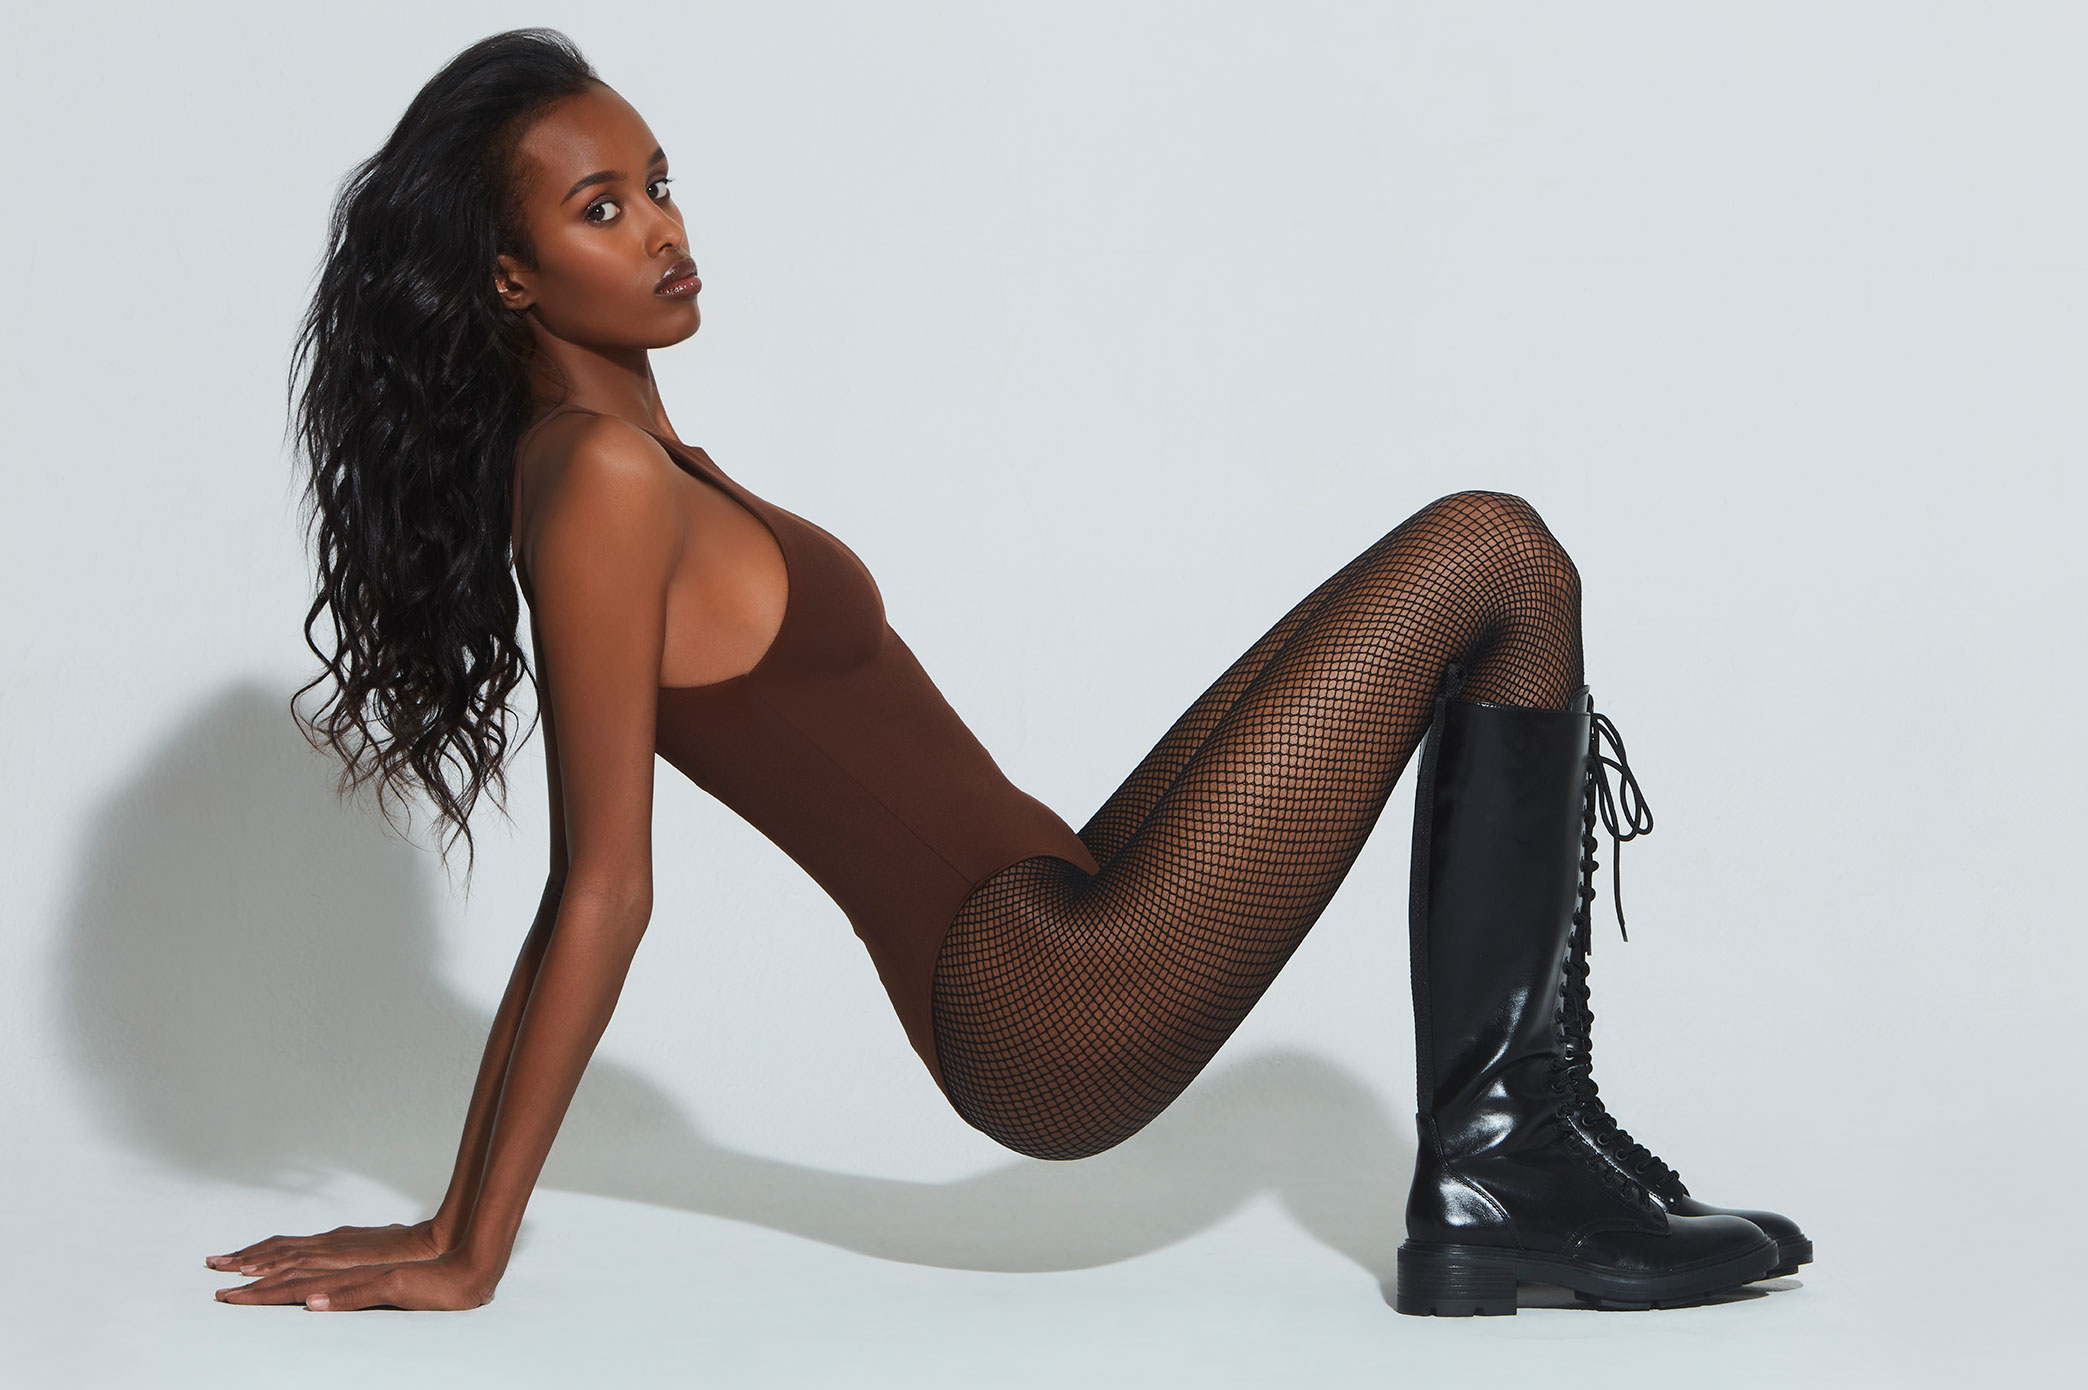 Nasir, One New York, looks amazing in this brown bodysuit matching the richness of her skin. Killer boots and fishnet stockings complete the look. Fashion stylist Brit Lovoi. Hair, makeup, Mua, beauty Veronika Robova